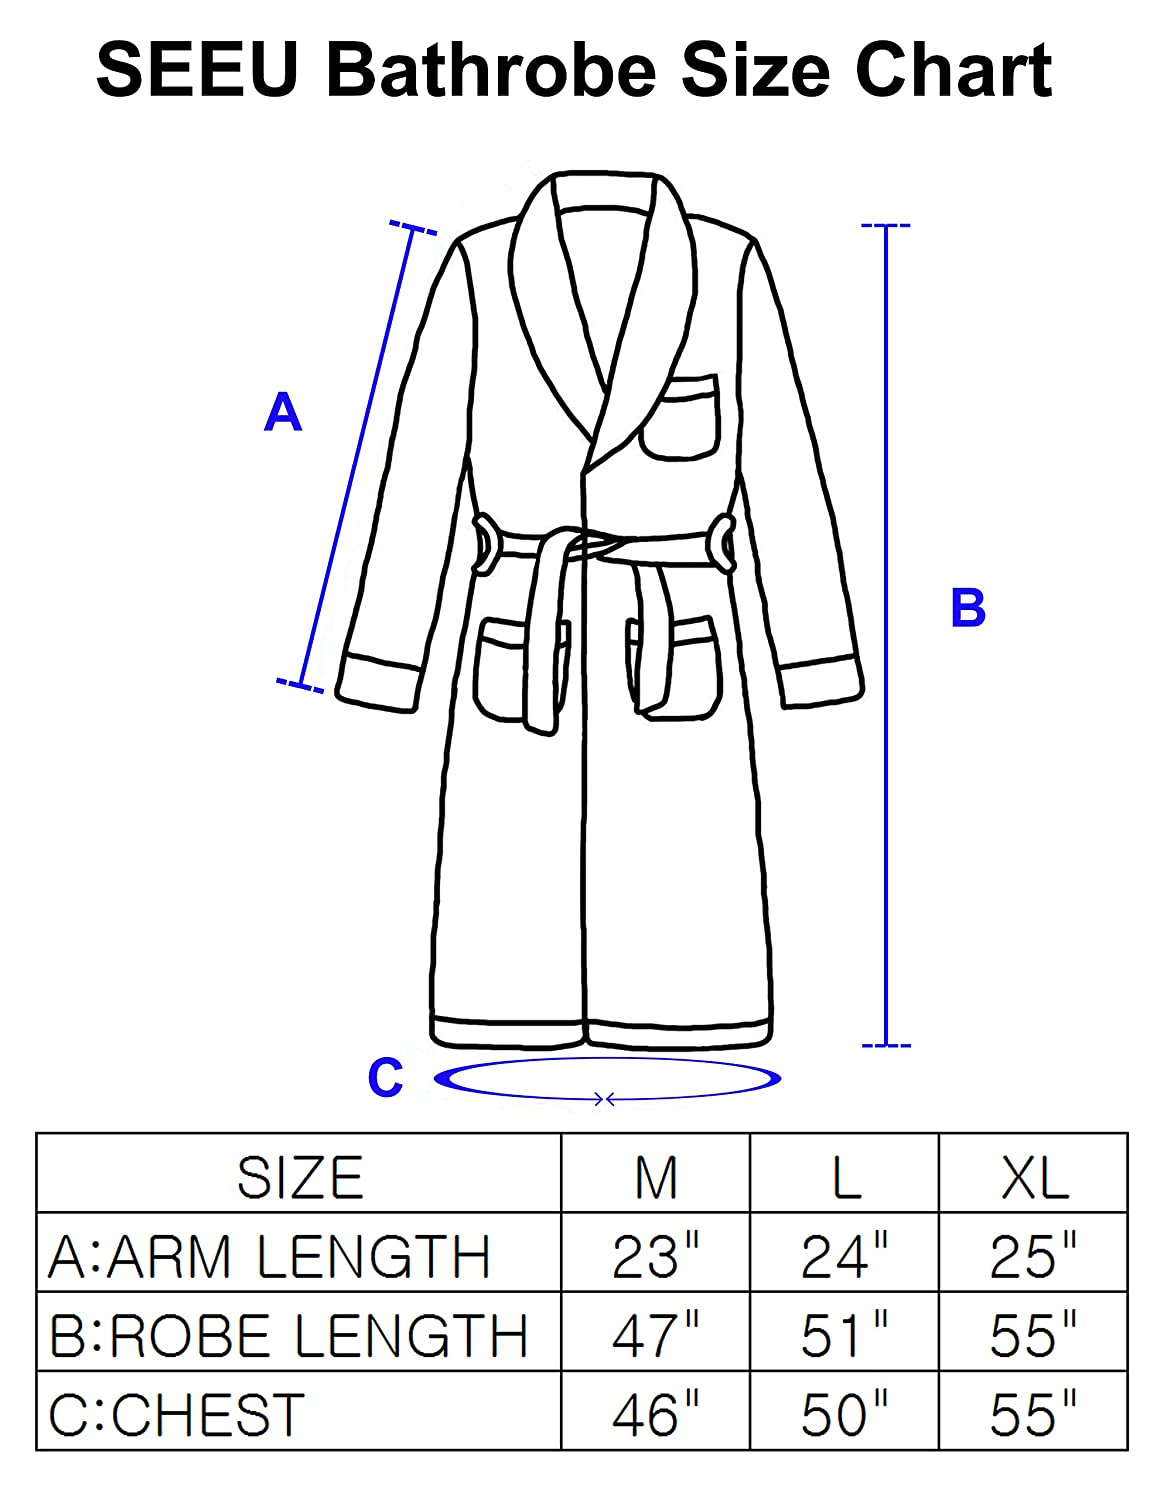 cb6ae84453 SEEU Women Soft Fleece Bathrobe with Zip Full Length Fluffy Dressing Gown  with 2 Side Pockets at Amazon Women s Clothing store